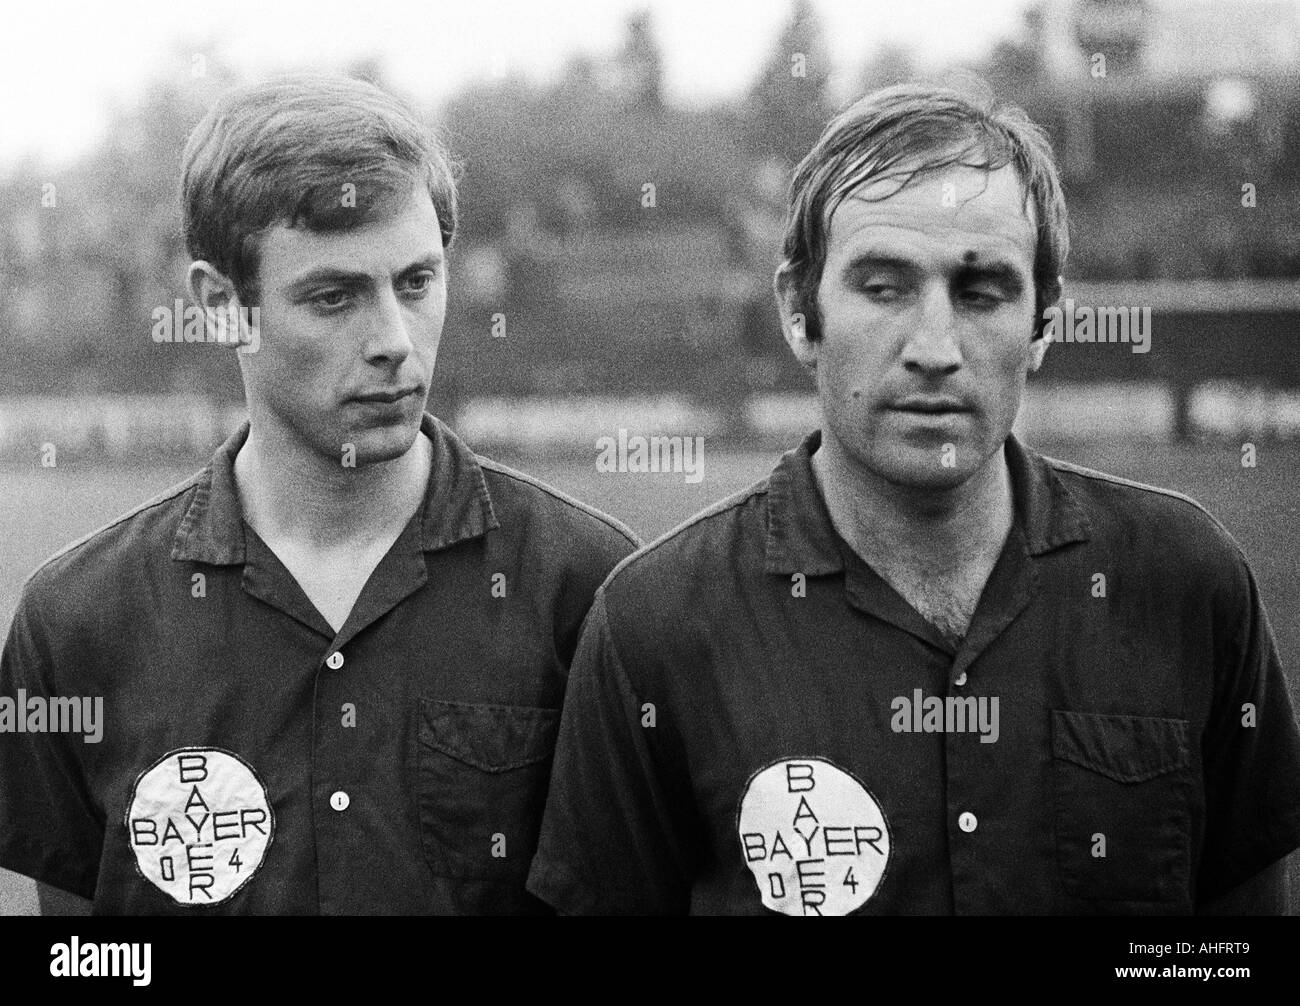 football, Regionalliga West, 1967/1968, Stadium am Uhlenkrug in Essen, ETB Schwarz-Weiss Essen versus Bayer Leverkusen 3:3, football players leaving the pitch, left Karl Heinz Bruecken (Leverkusen), right Helmut Richert (Leverkusen) - Stock Image